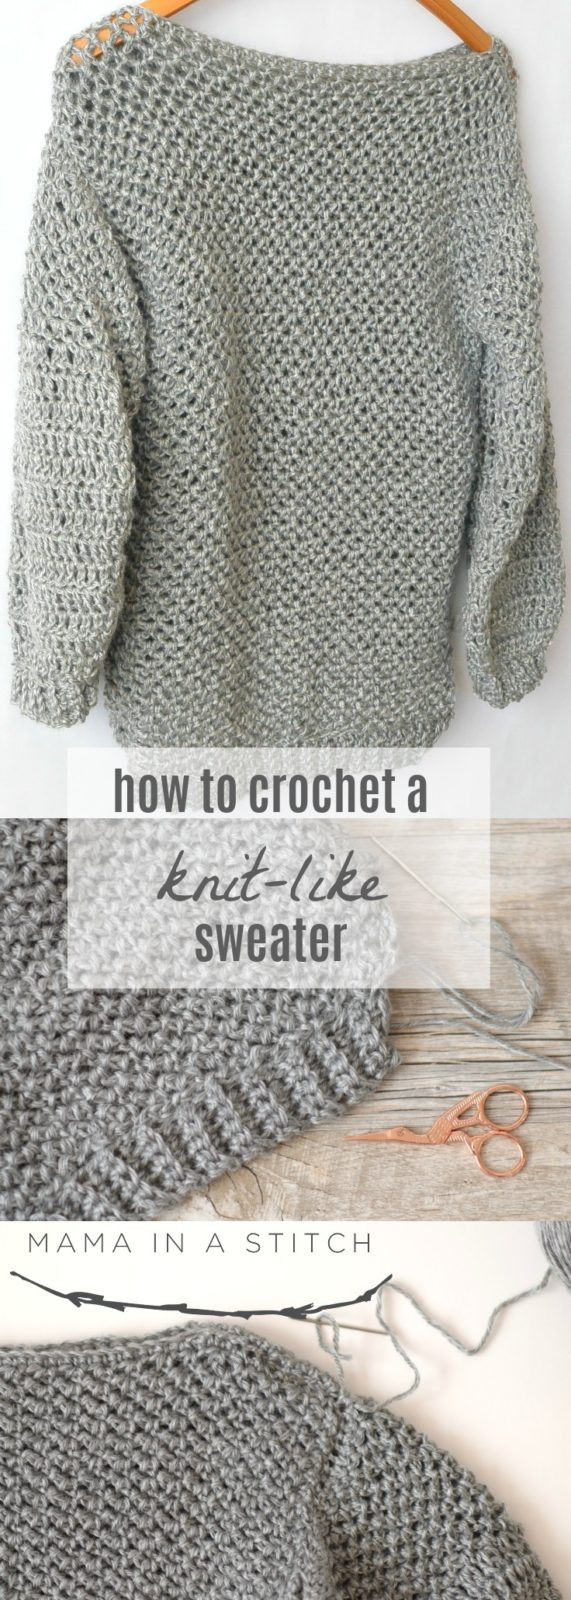 Crochet Pullover Sweater Pattern Best Of How to Make An Easy Crocheted Sweater Knit Like – Mama Of Beautiful 43 Ideas Crochet Pullover Sweater Pattern